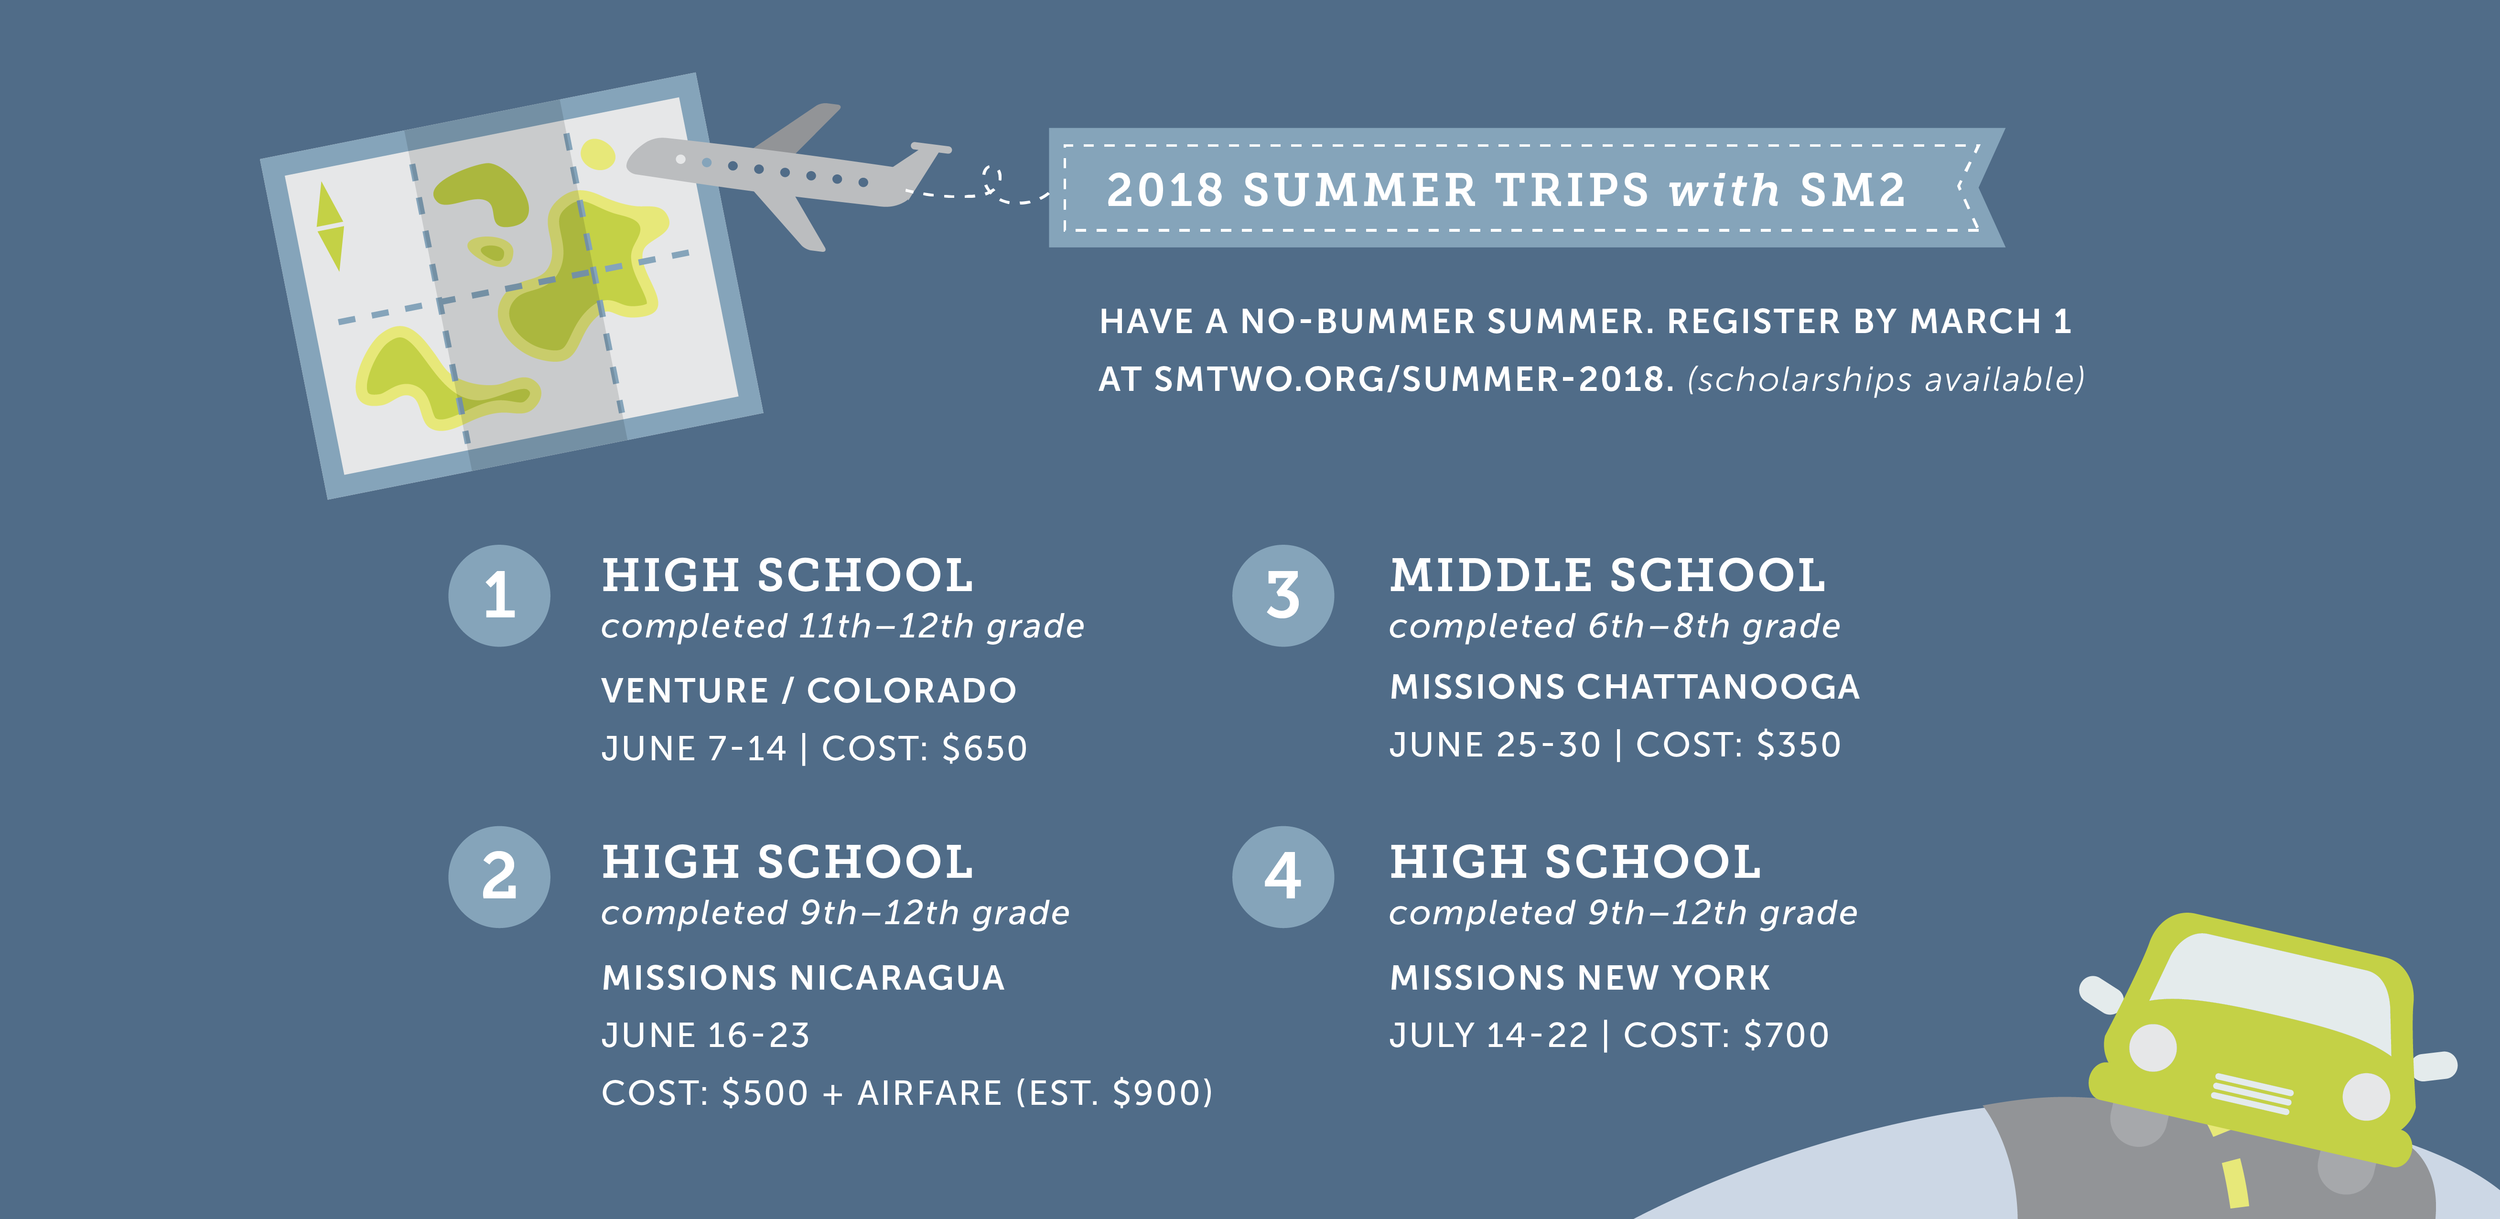 SMPC - YOUTH - 2018 SUMMER TRIPS - Online Promo Images - v2_Website Image.png